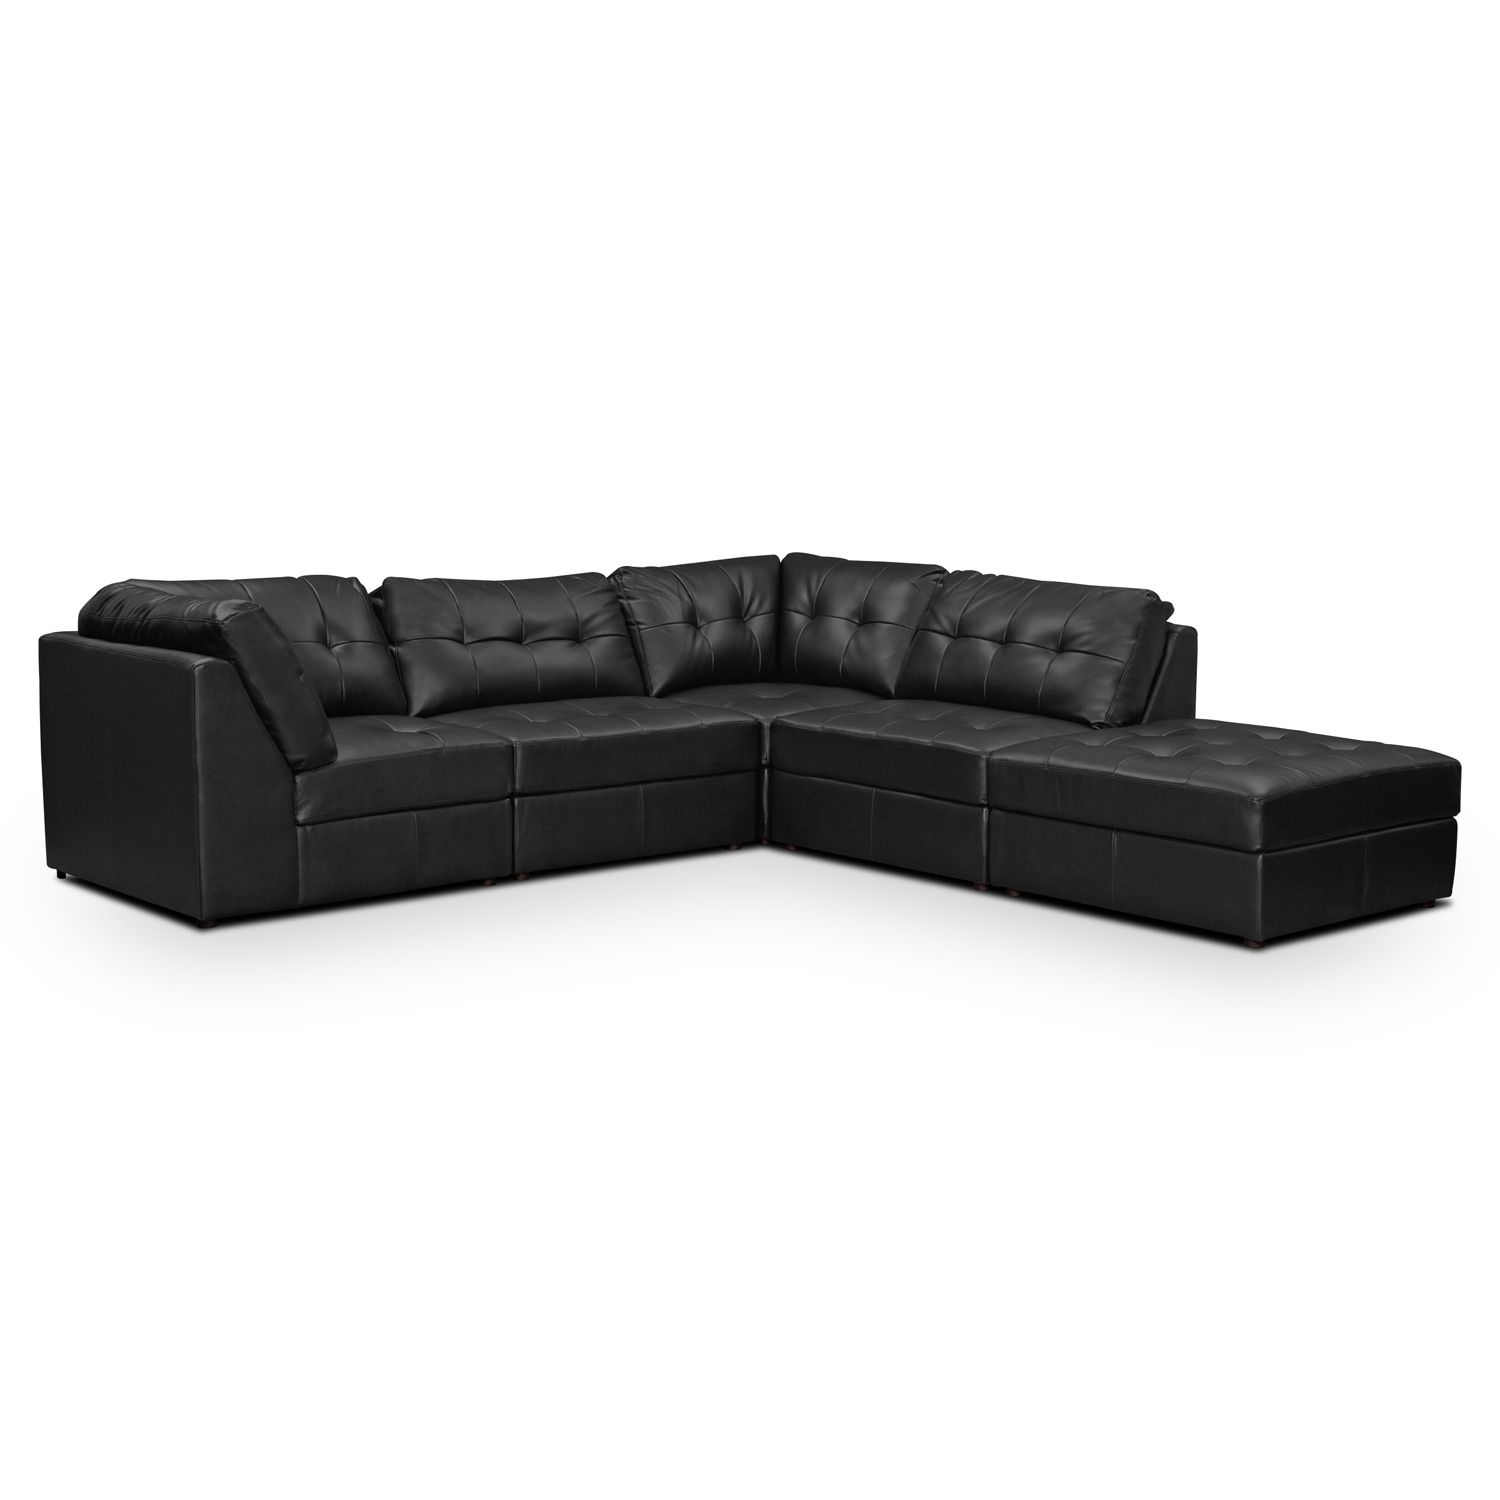 Aventura Leather 5 Pc. Sectional - Value City Furniture in City Furniture Leather Sectional